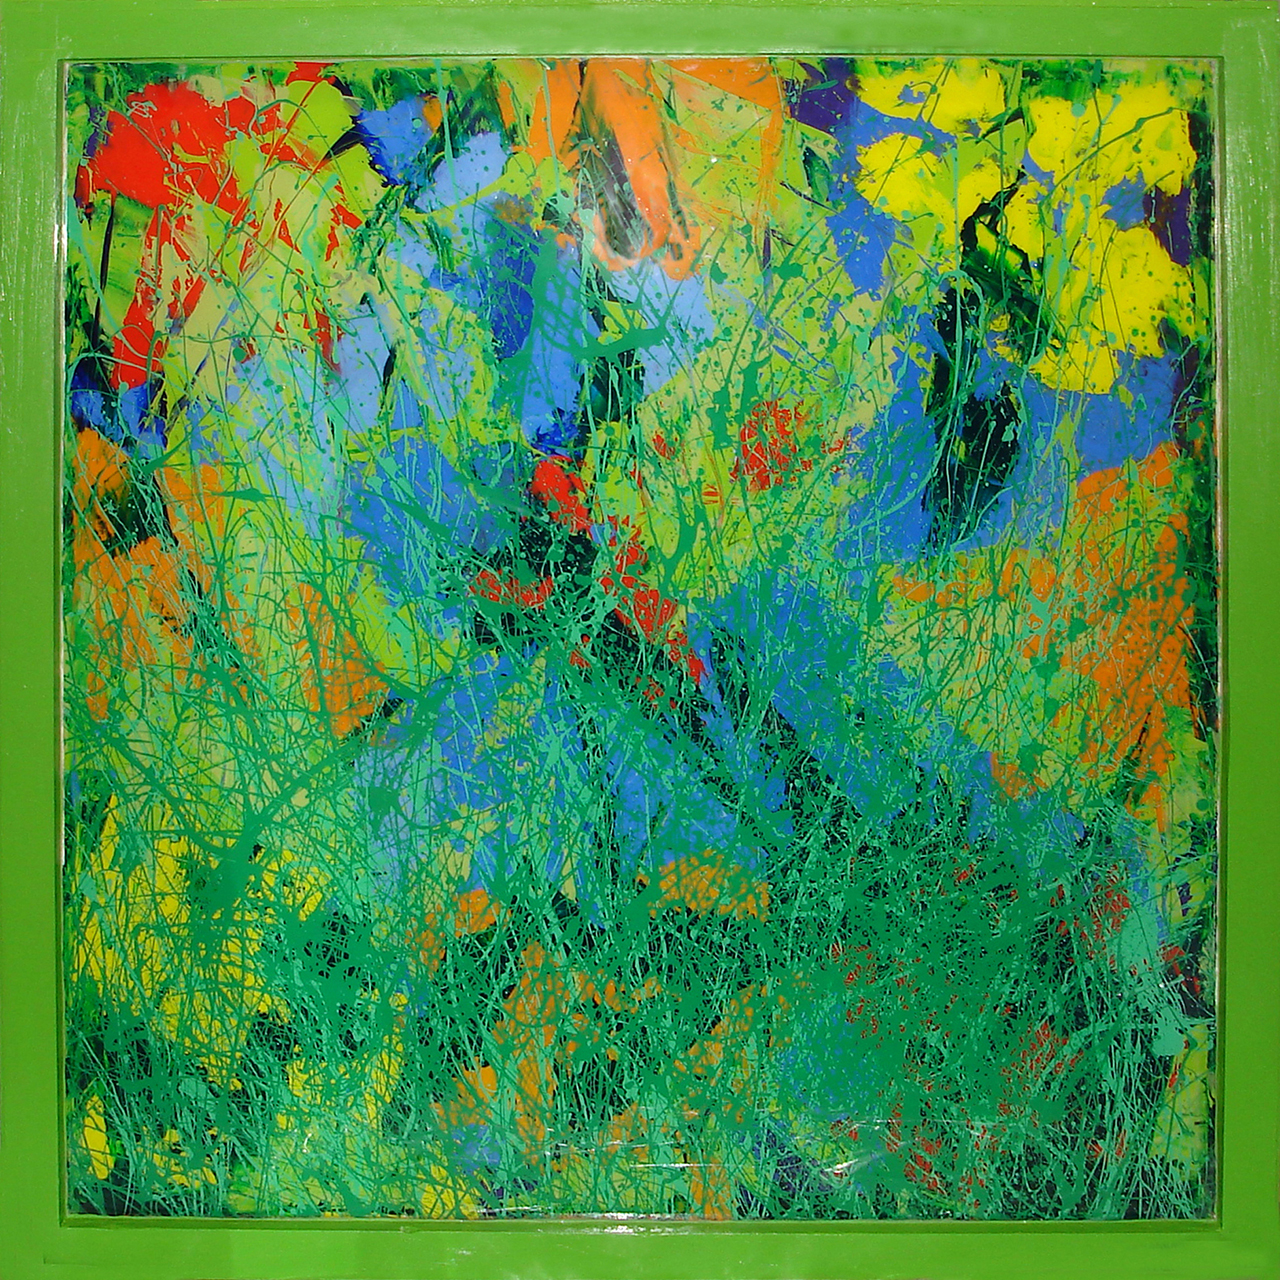 painting inspired by the garden at Glandernol, by artist Sue Purcell